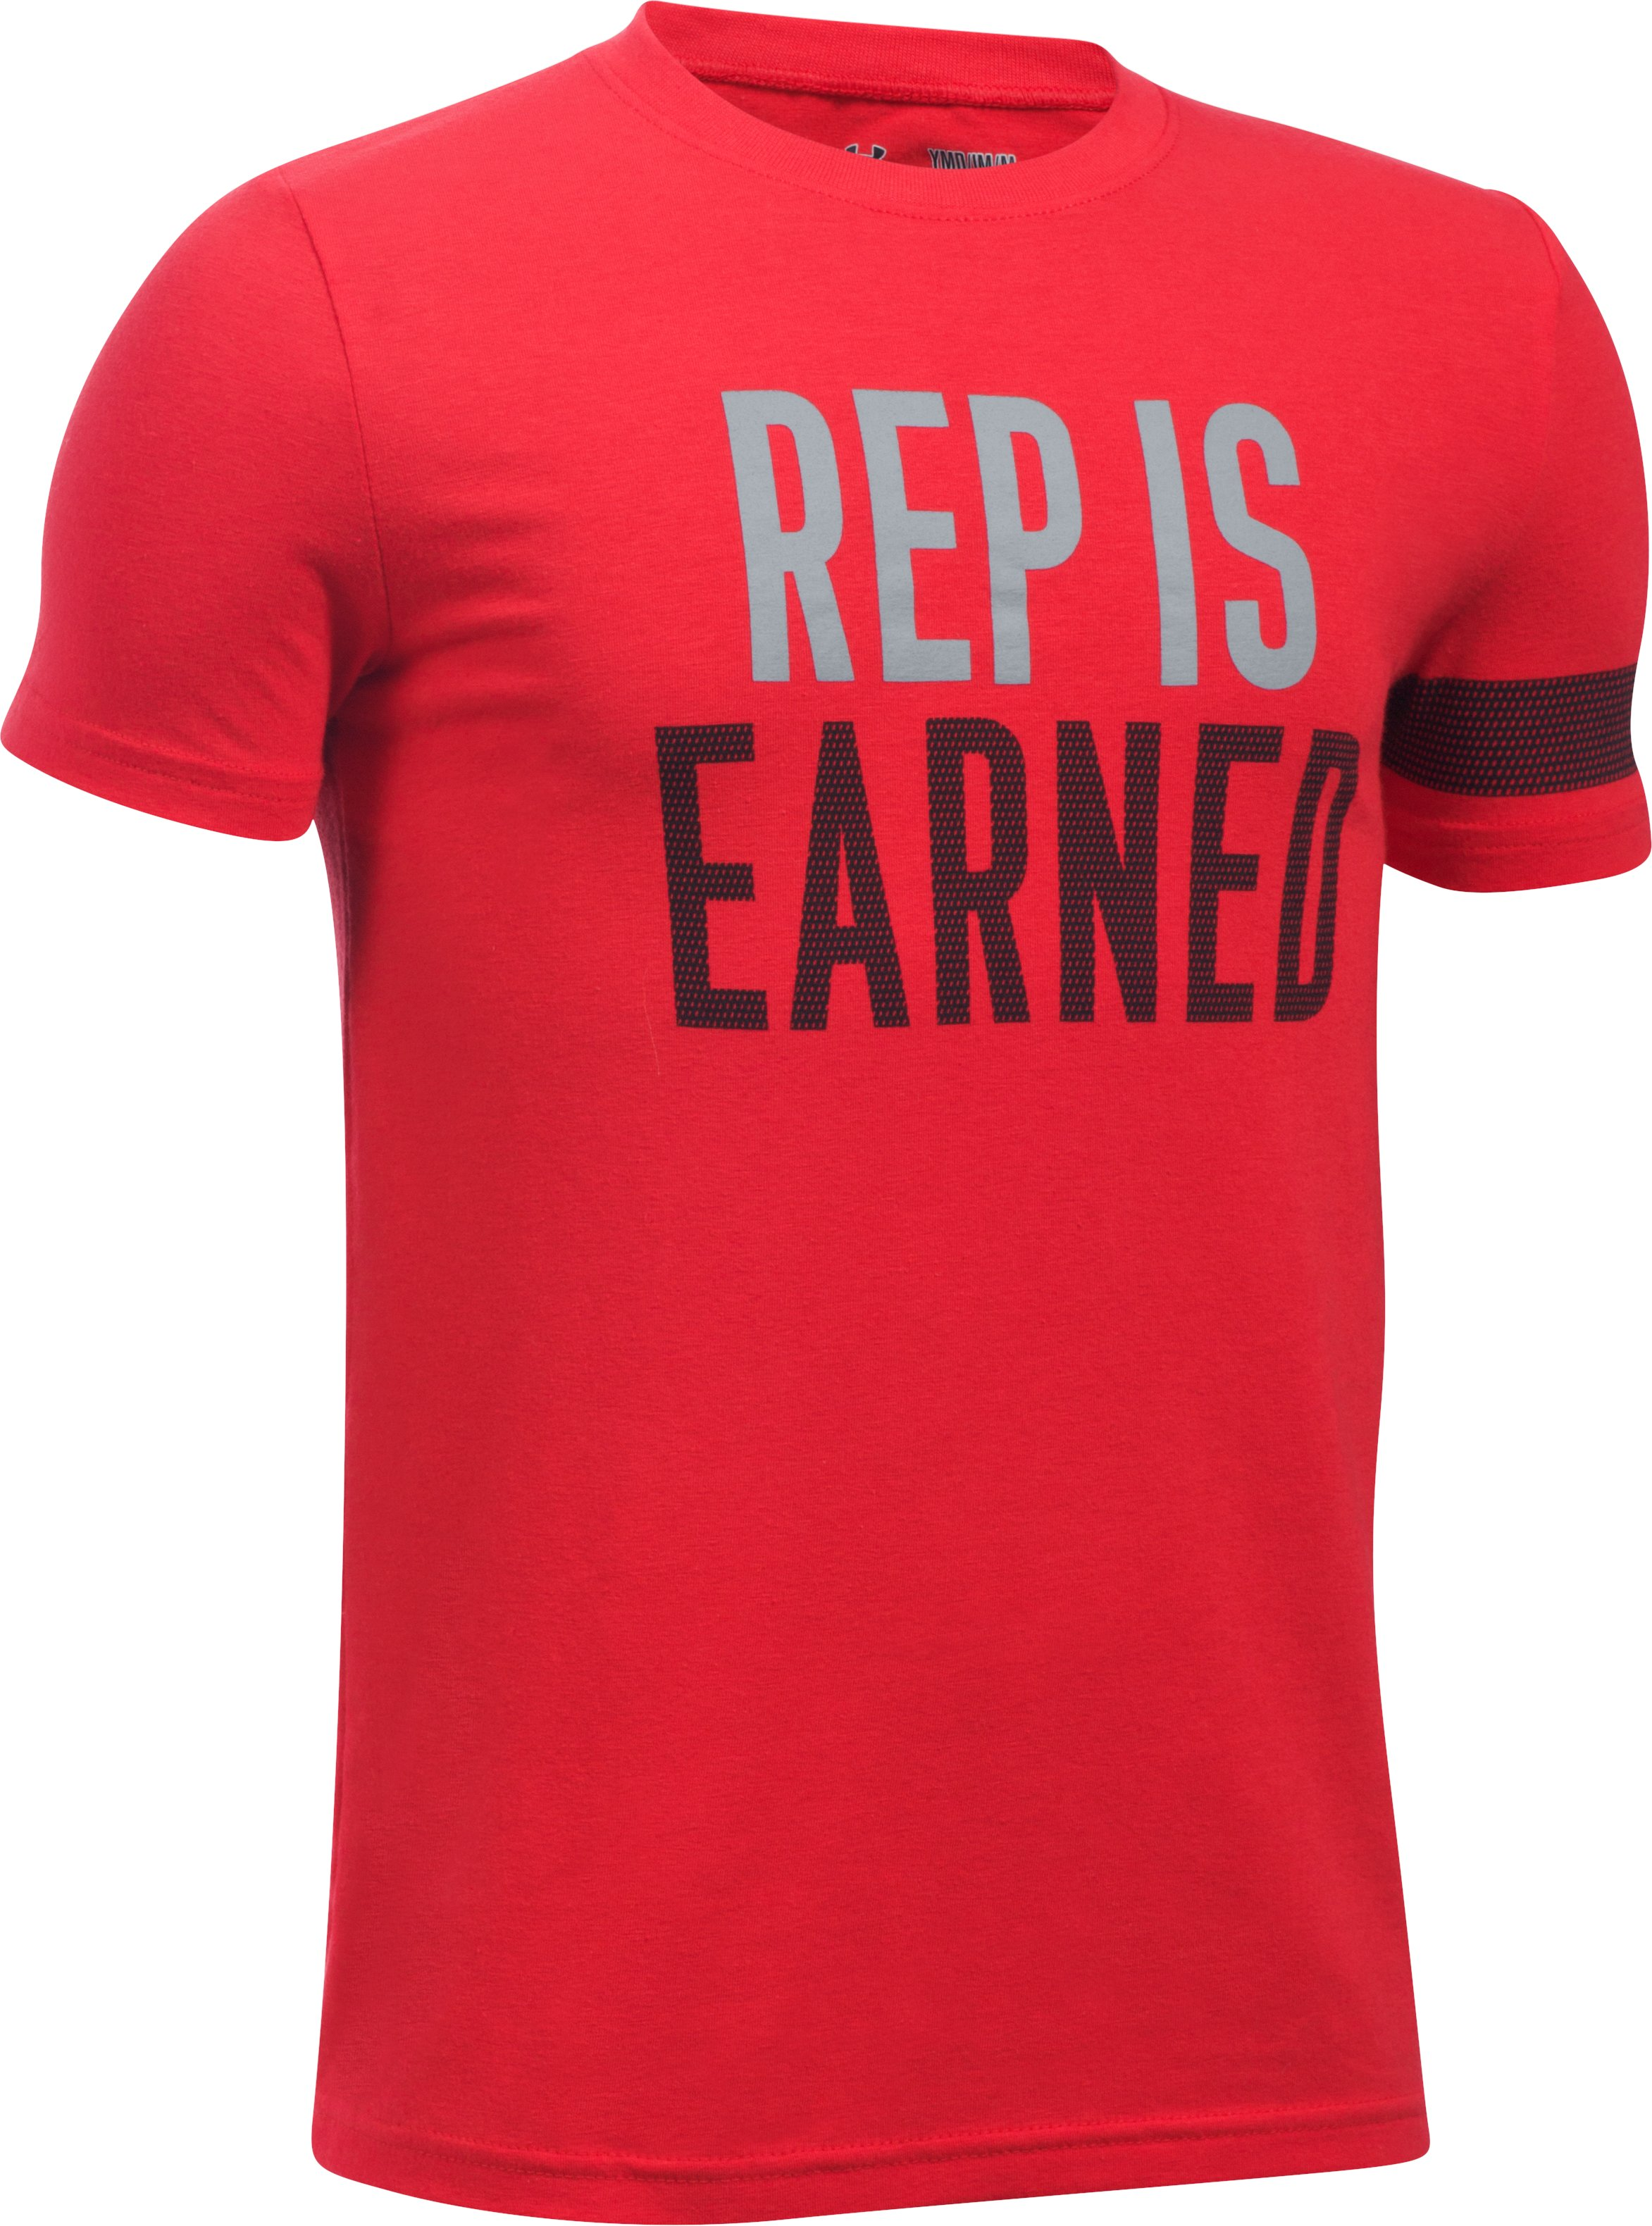 Boys' UA Rep Is Earned T-Shirt, Red